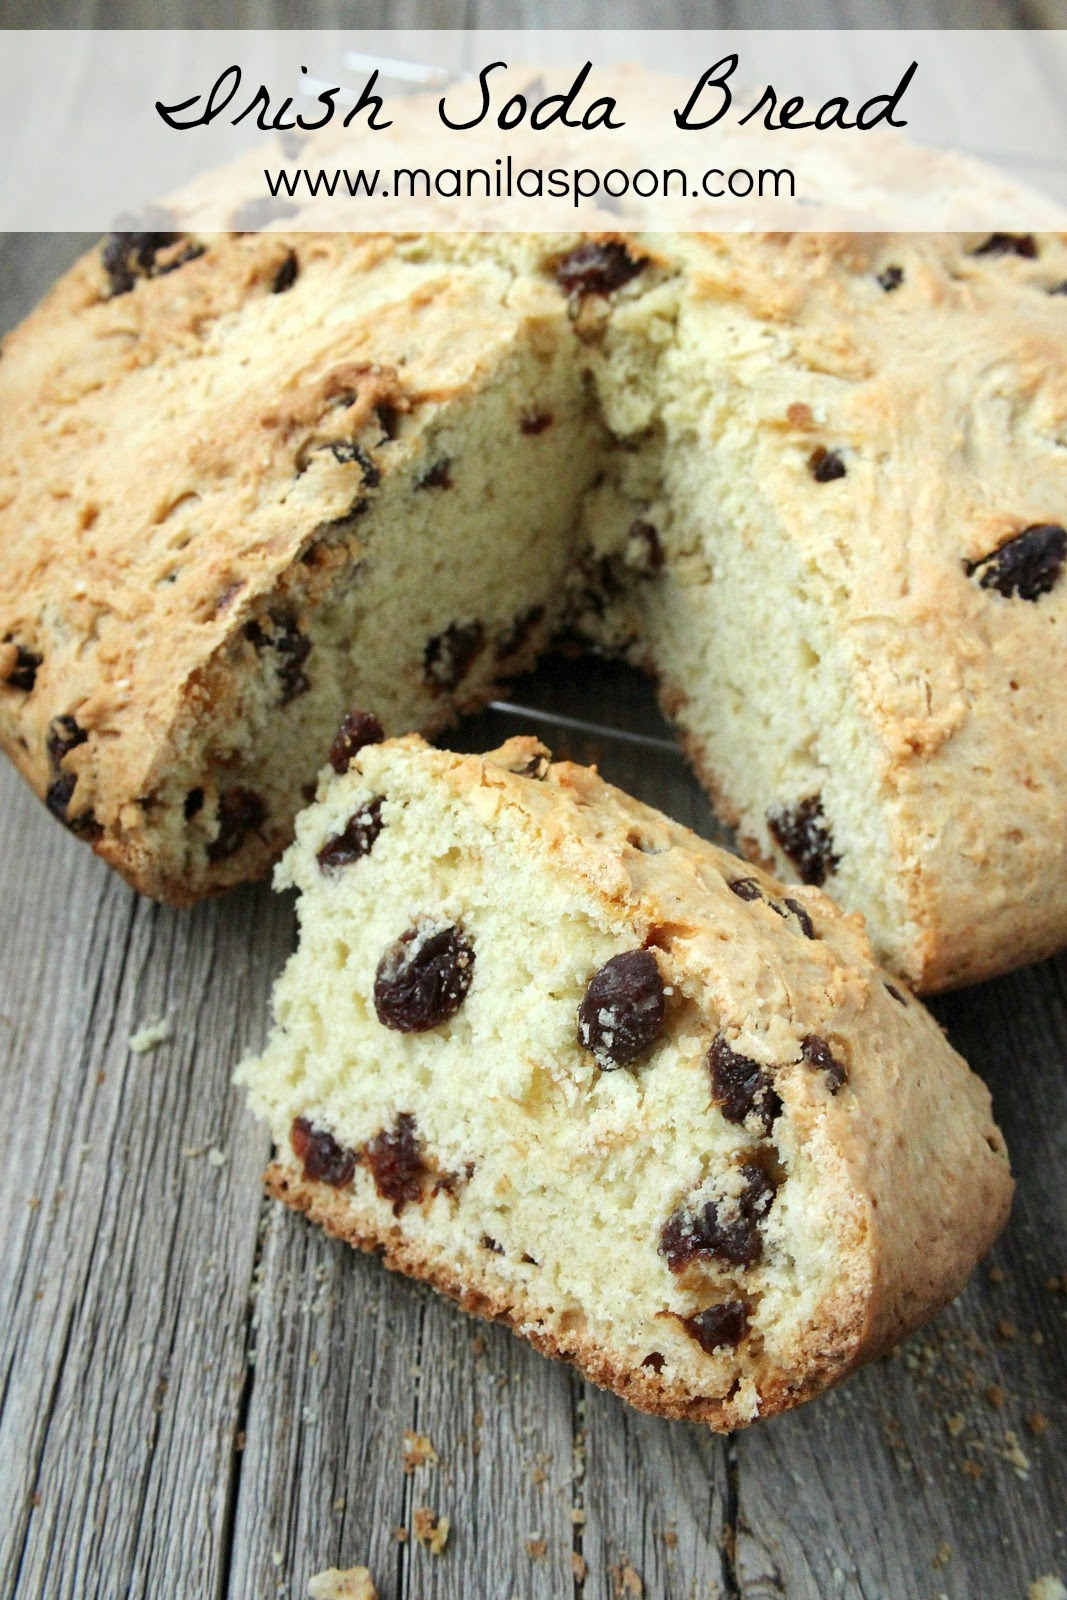 It doesn't require much effort to make this delicious Irish Soda Bread made even more flavorful with the addition of sweet raisins. Enjoy for tea time or with your coffee. SO GOOD!! #irish #sodabread